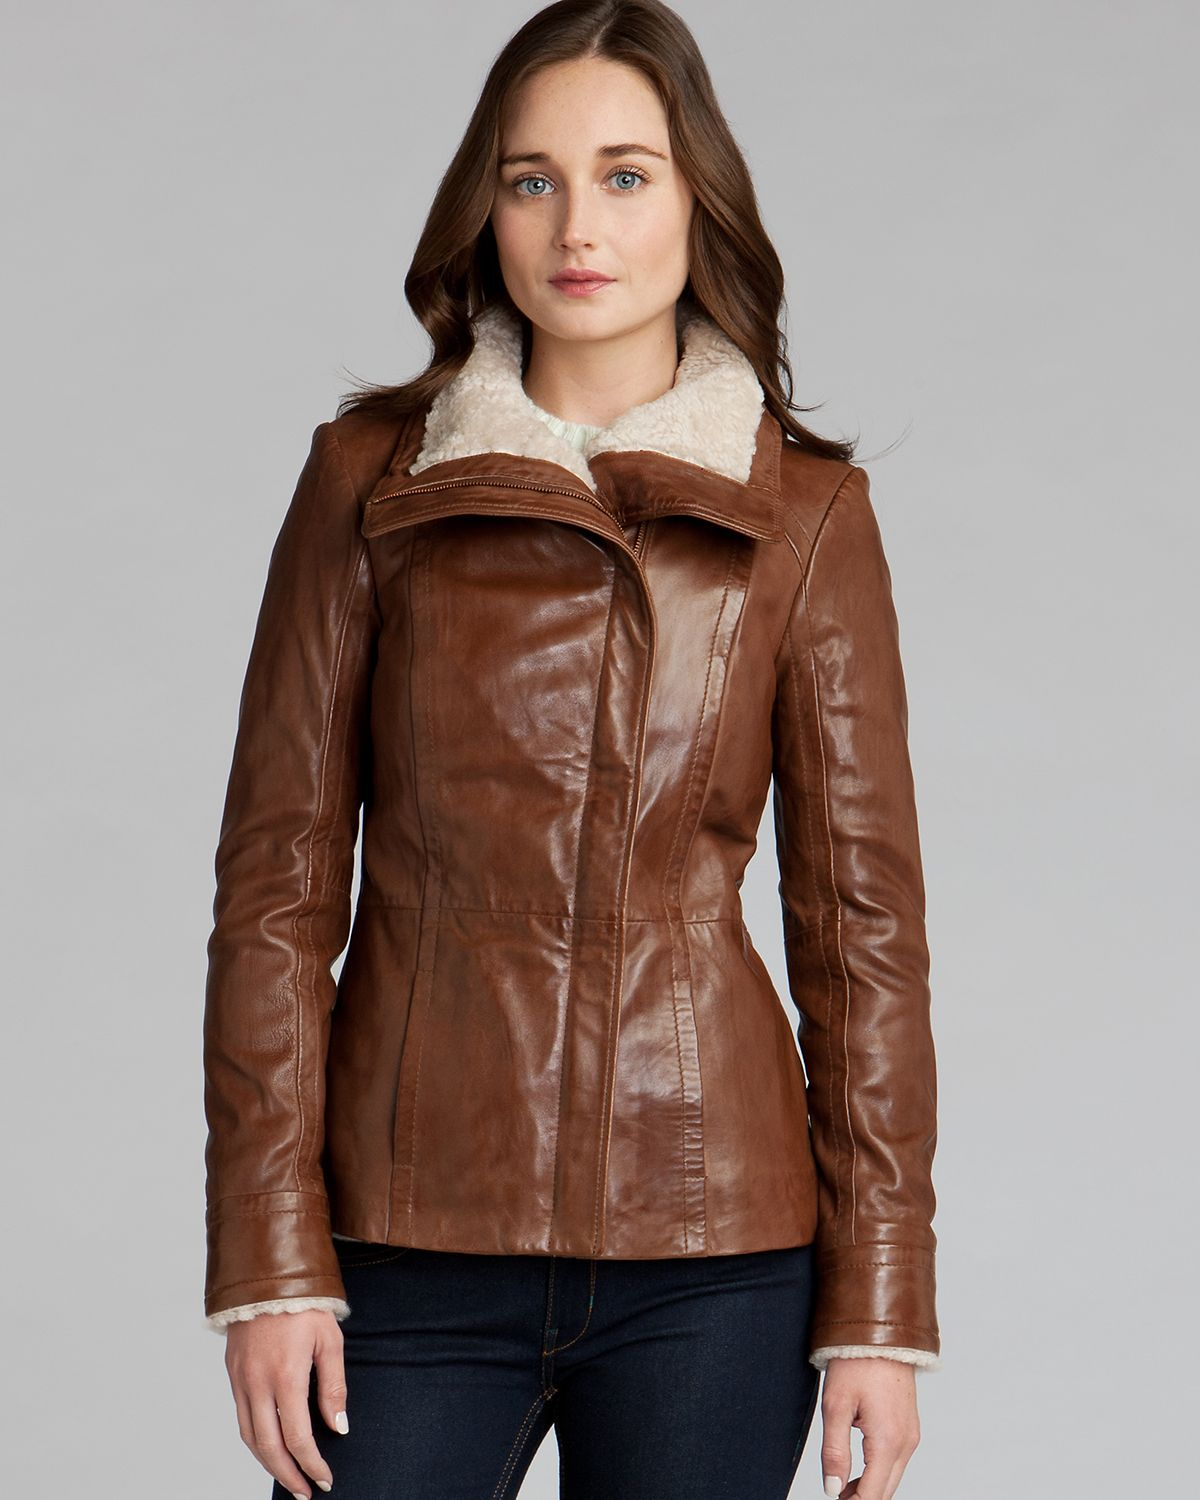 d7c162fd1 Lyst - Ted Baker Leather Jacket Amilia Shearling Collar in Brown